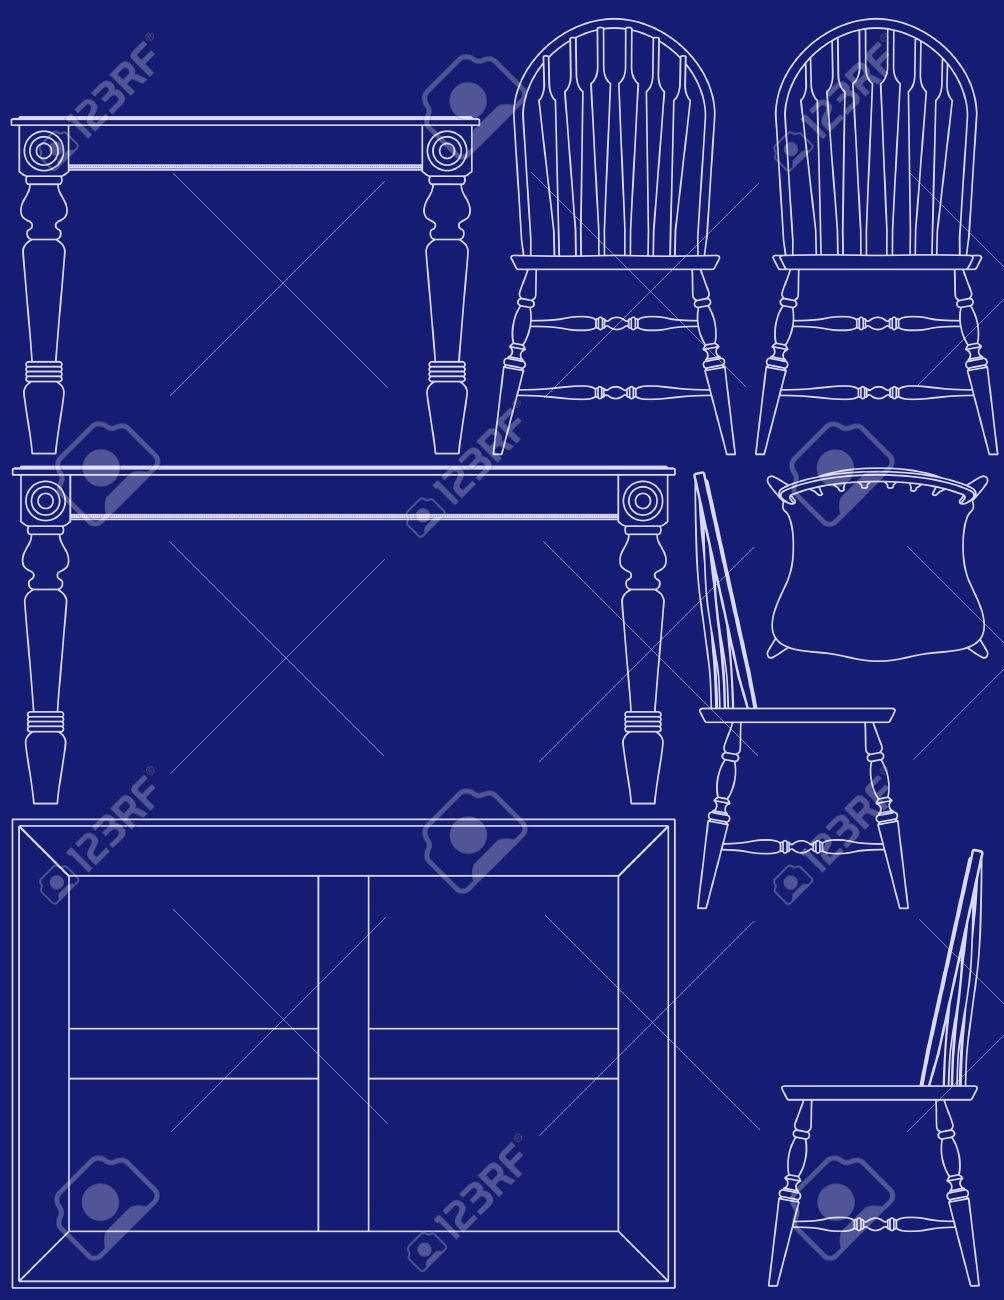 Blueprint Dining oom Furniture oyalty Free liparts, Vectors ... - ^